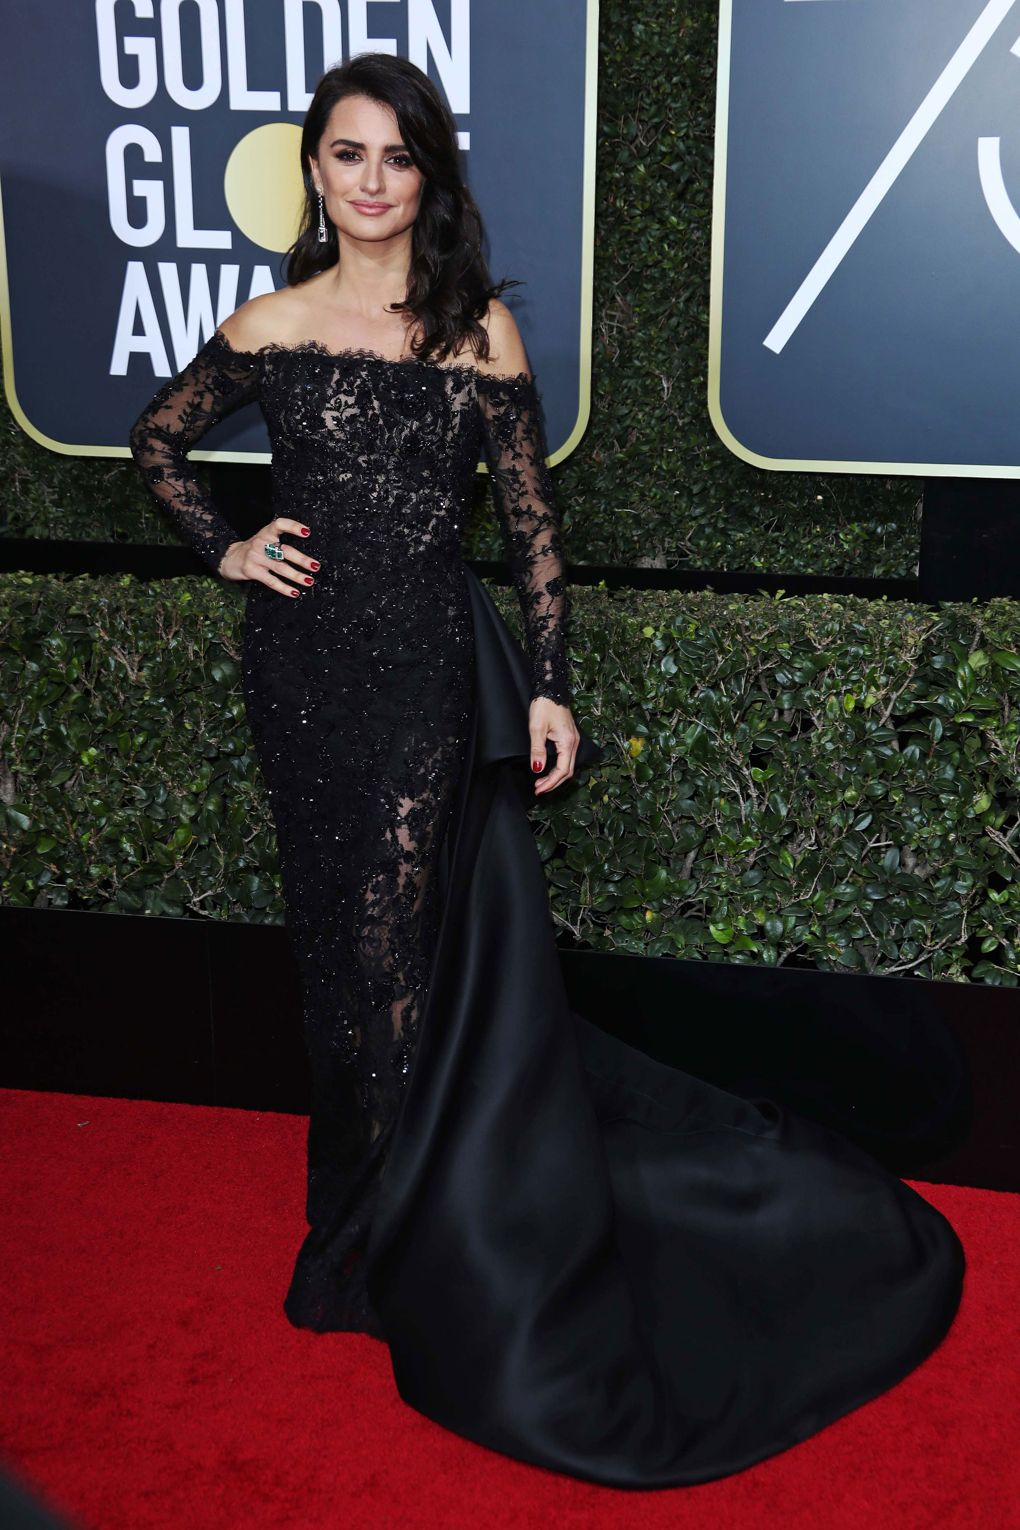 golden globes 2019 - photo #43